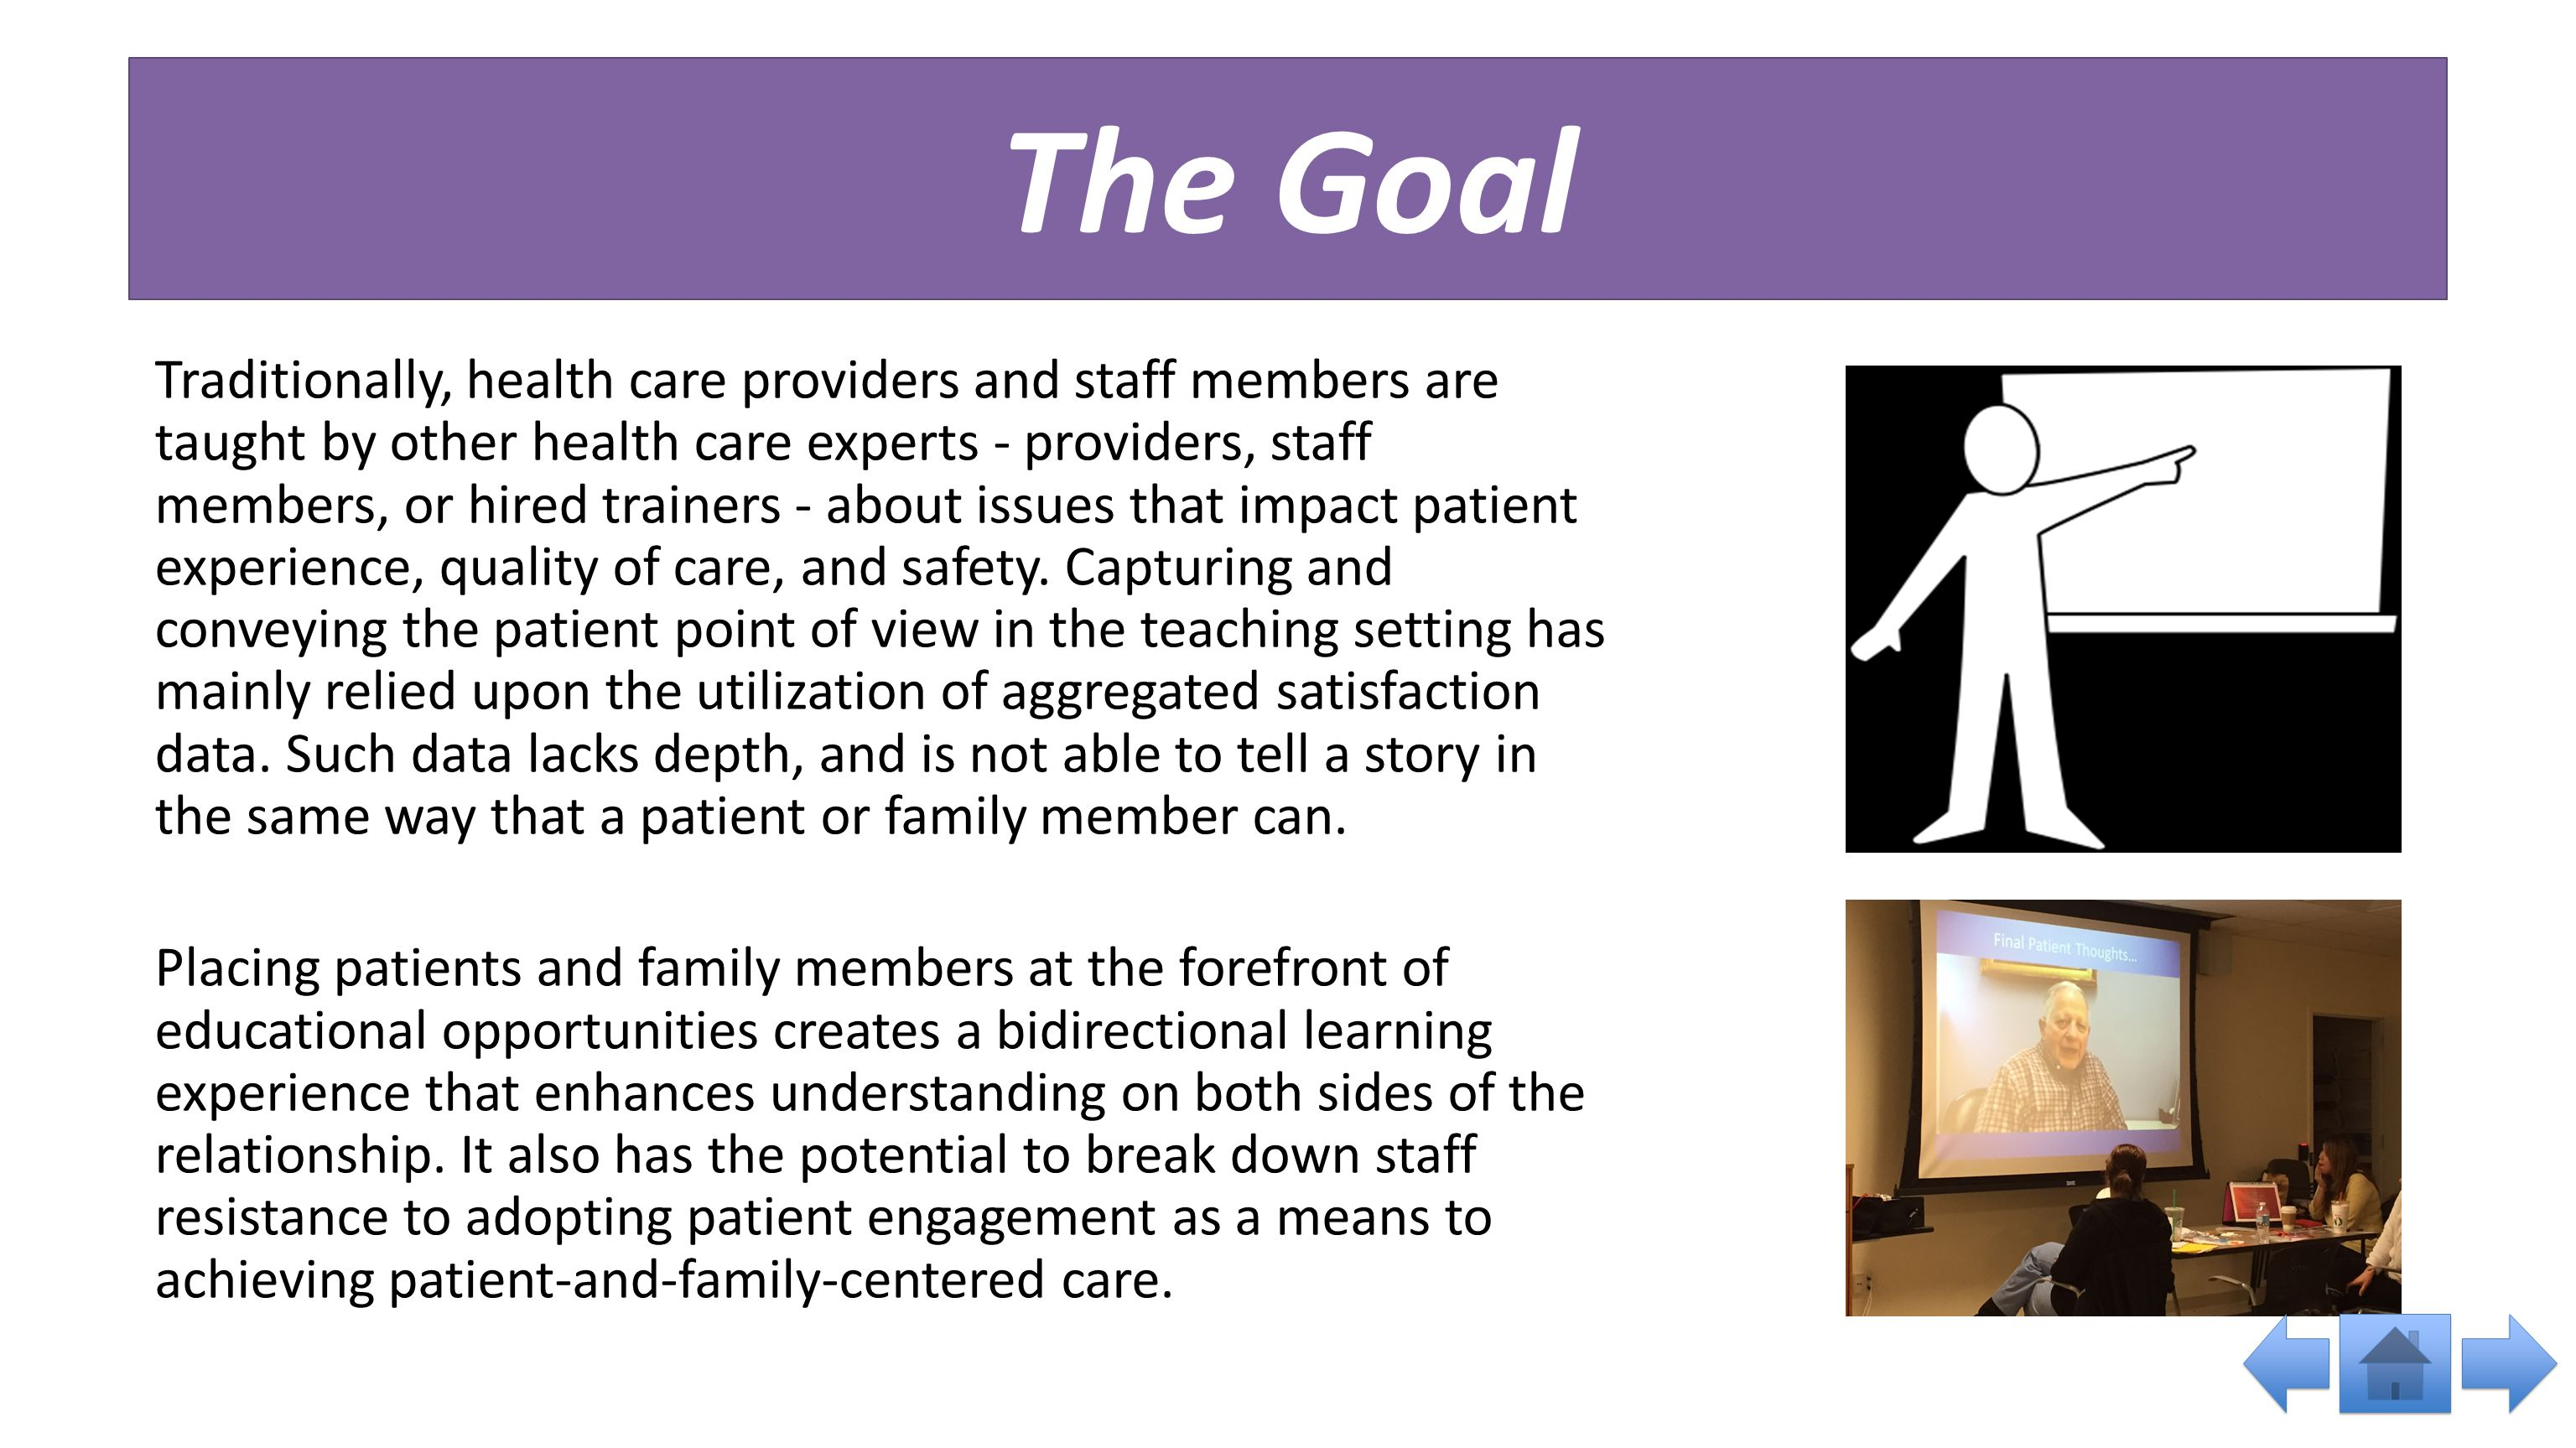 The Goal Traditionally, health care providers and staff members are taught by other health care experts - providers, staff members, or hired trainers - about issues that impact patient experience, quality of care, and safety.